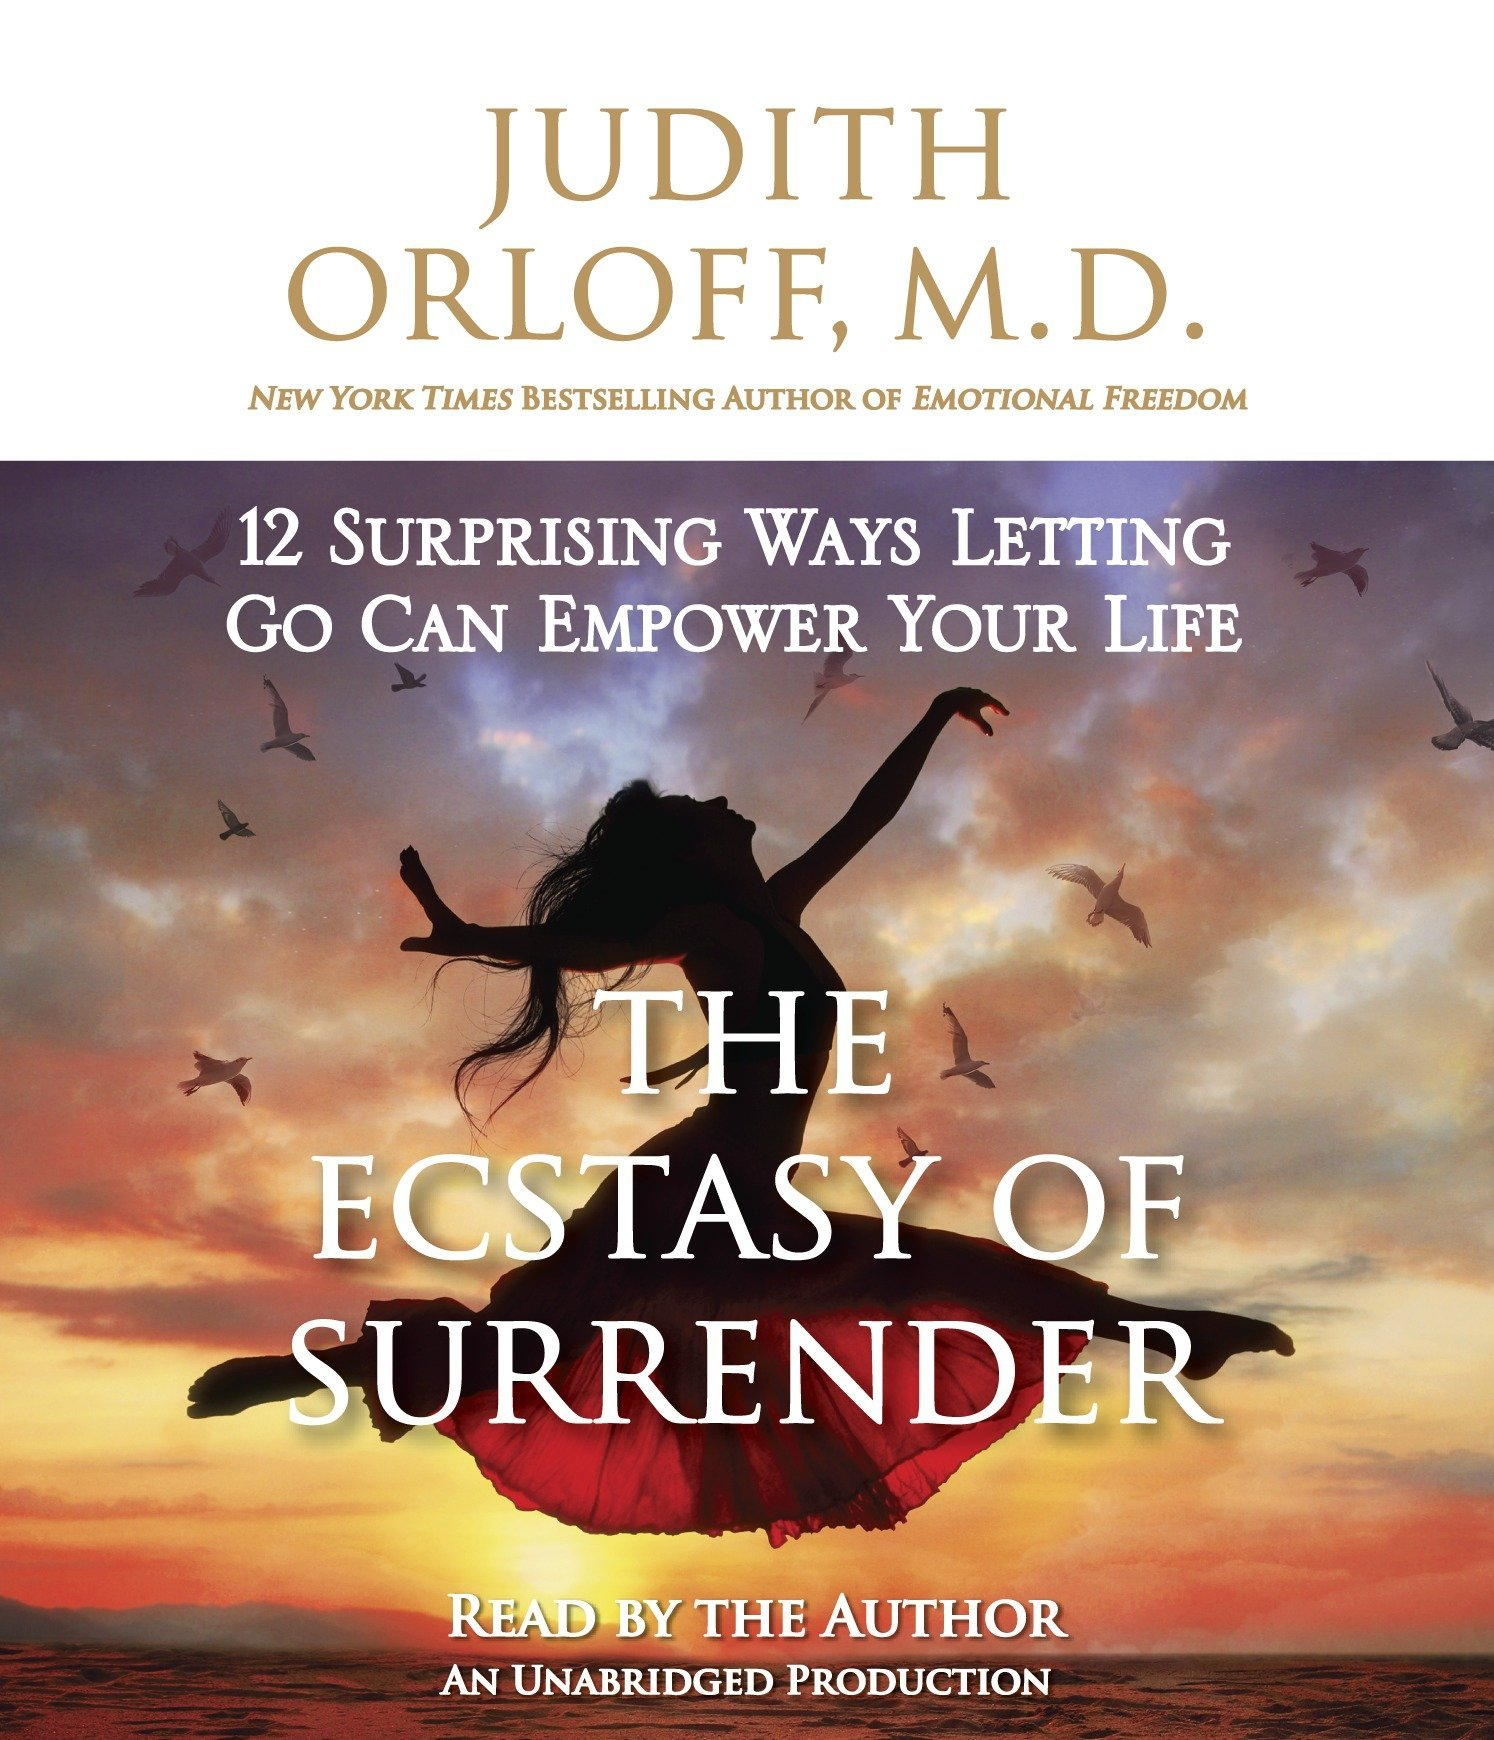 The Ecstasy of Surrender: 12 Surprising Ways Letting Go Can Empower Your  Life: Judith Orloff M.D.: 9780804165334: Amazon.com: Books